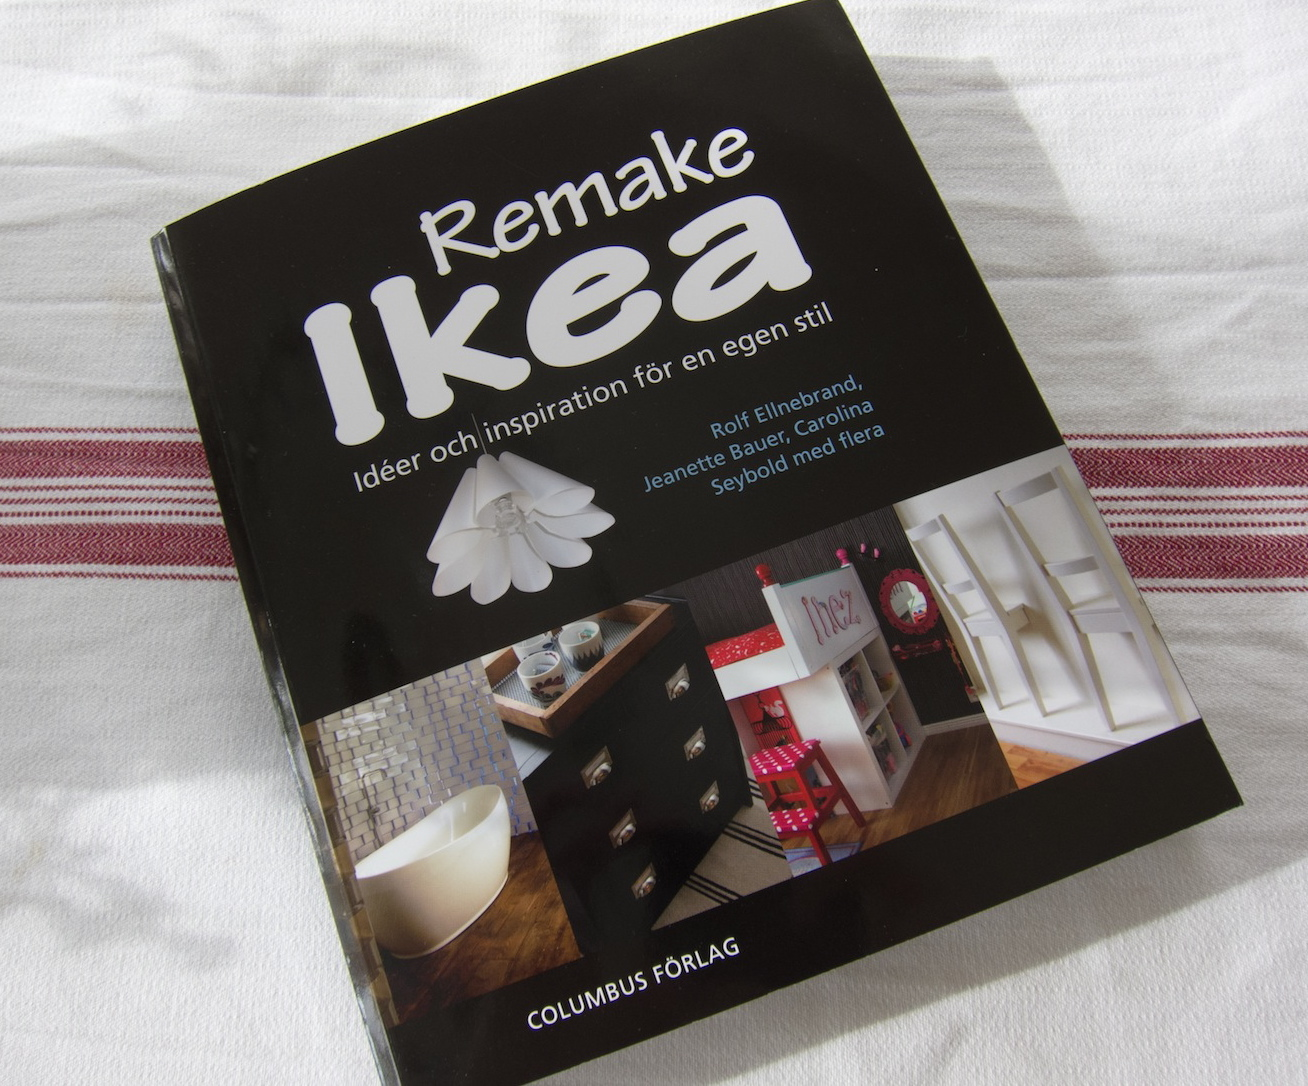 Remake Ikea - bok